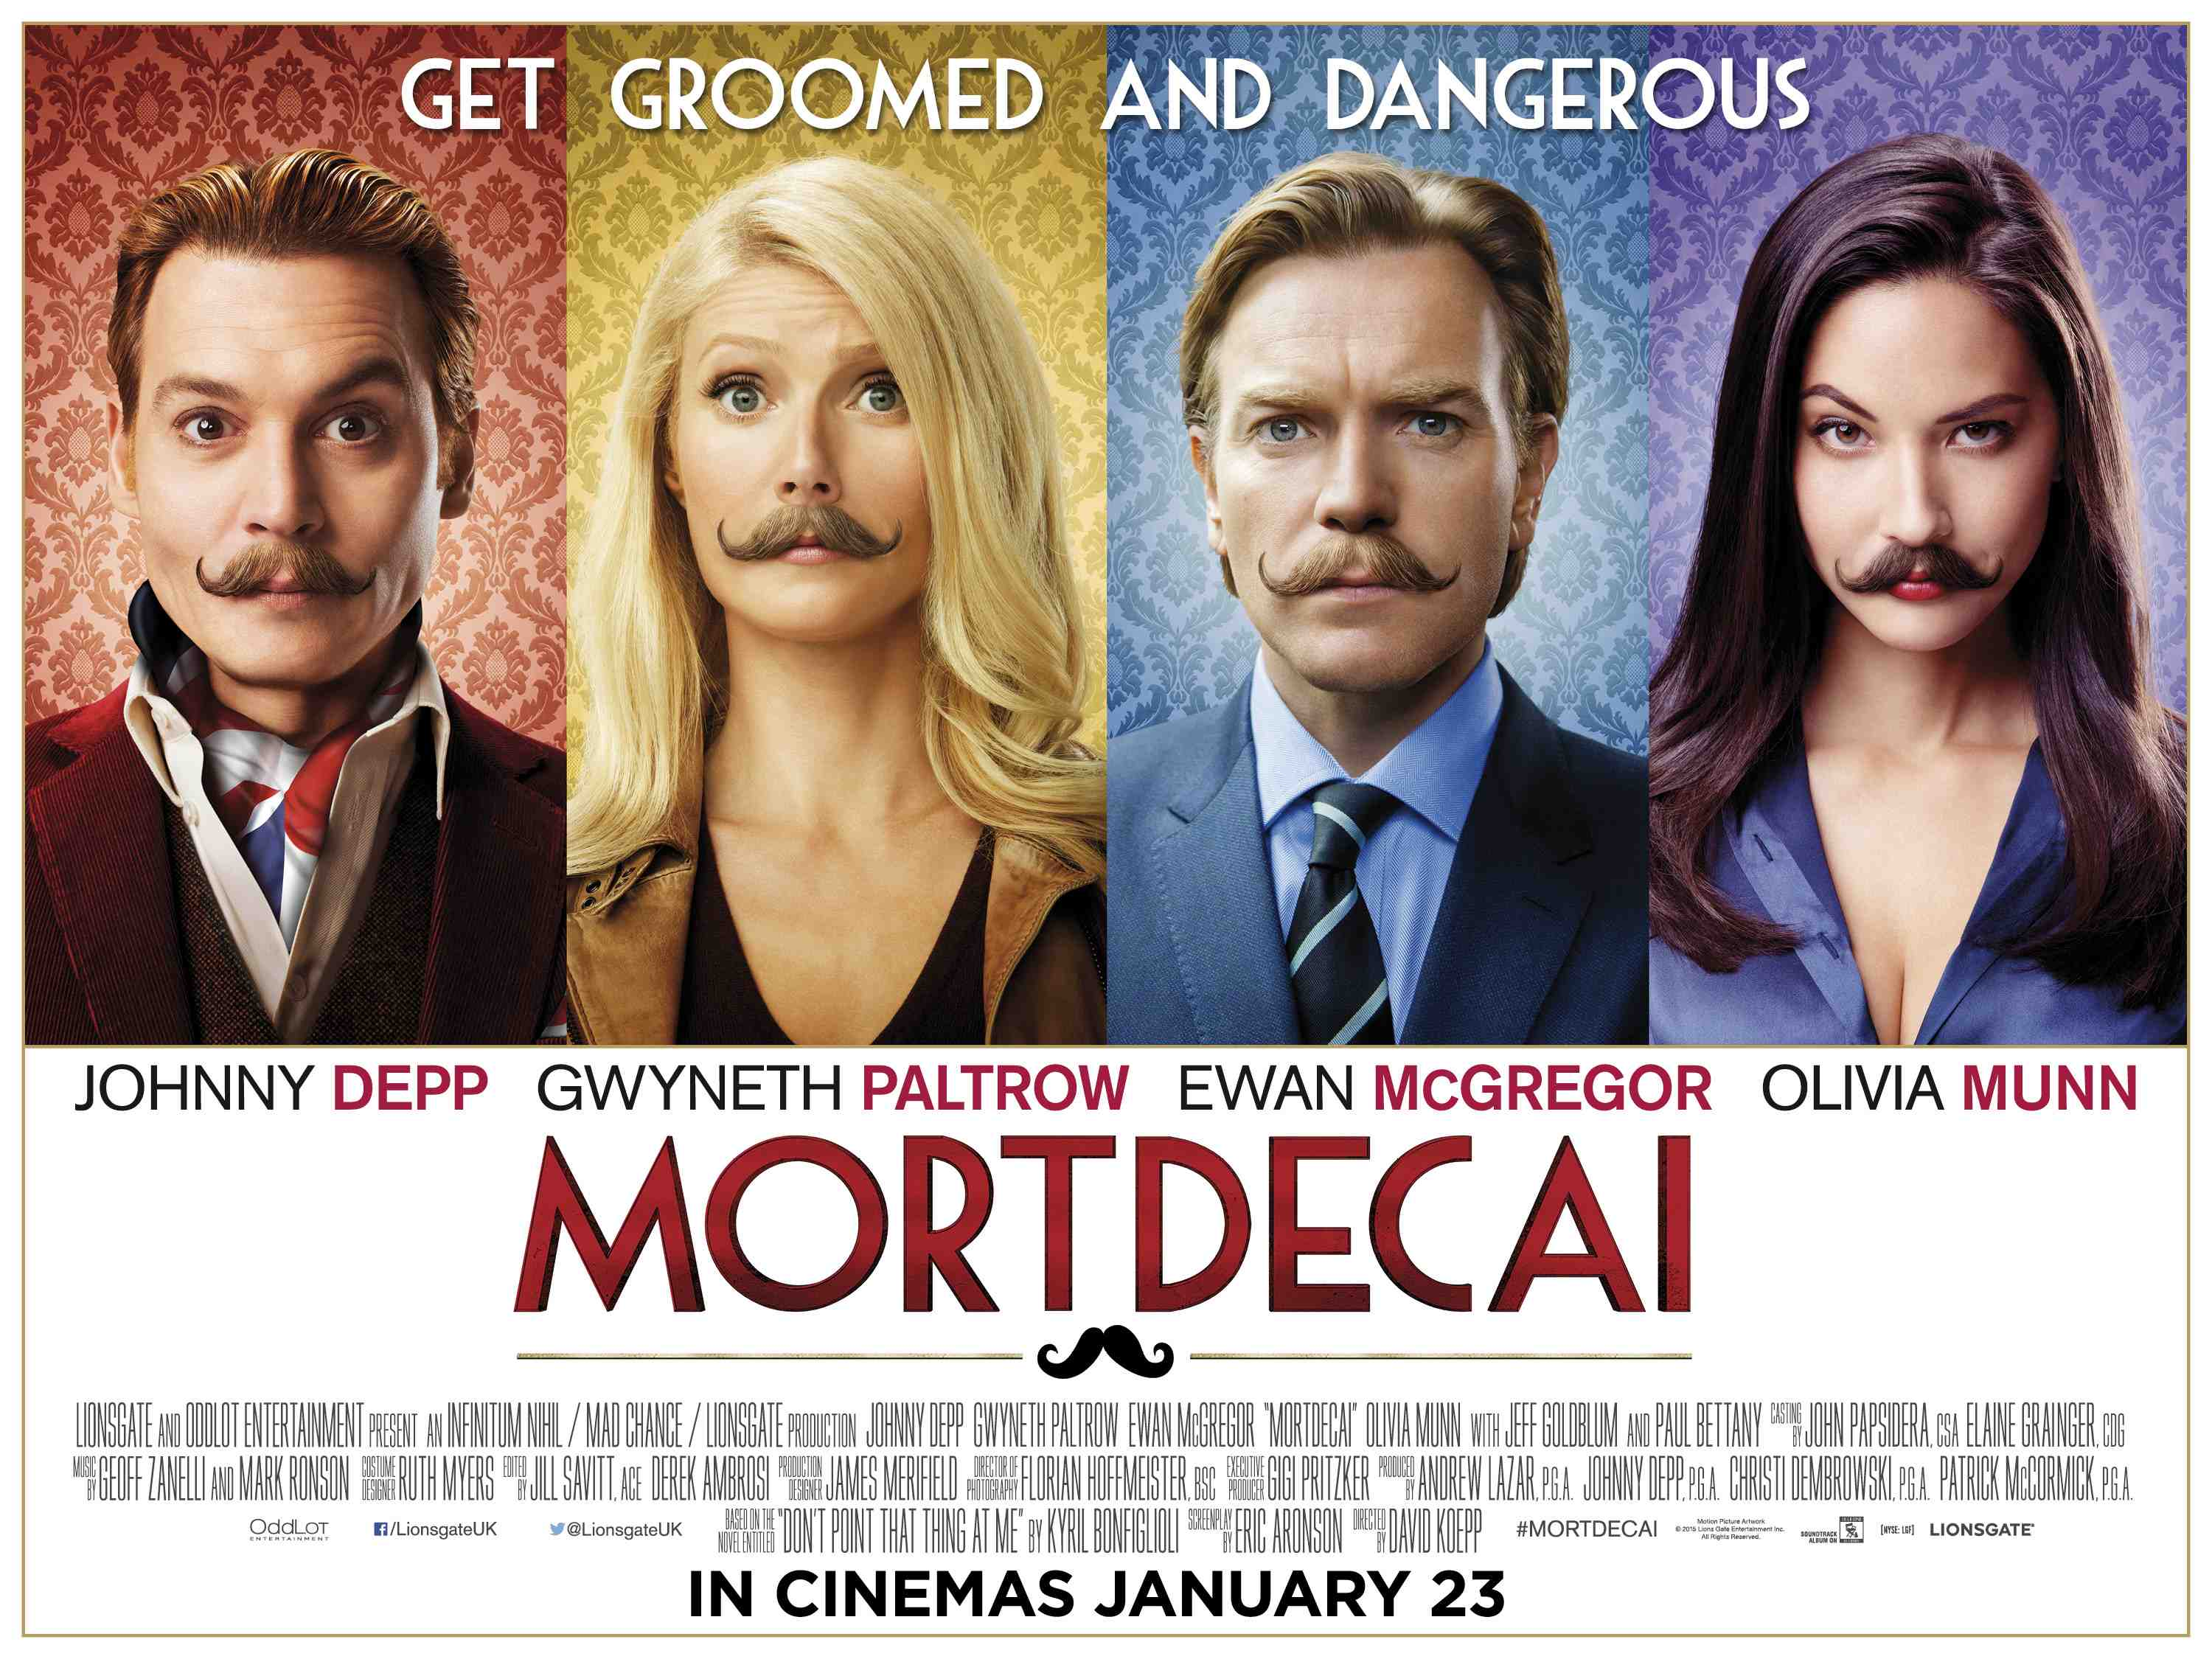 <b>WIN! MORTDECAI MOVIE...</b>